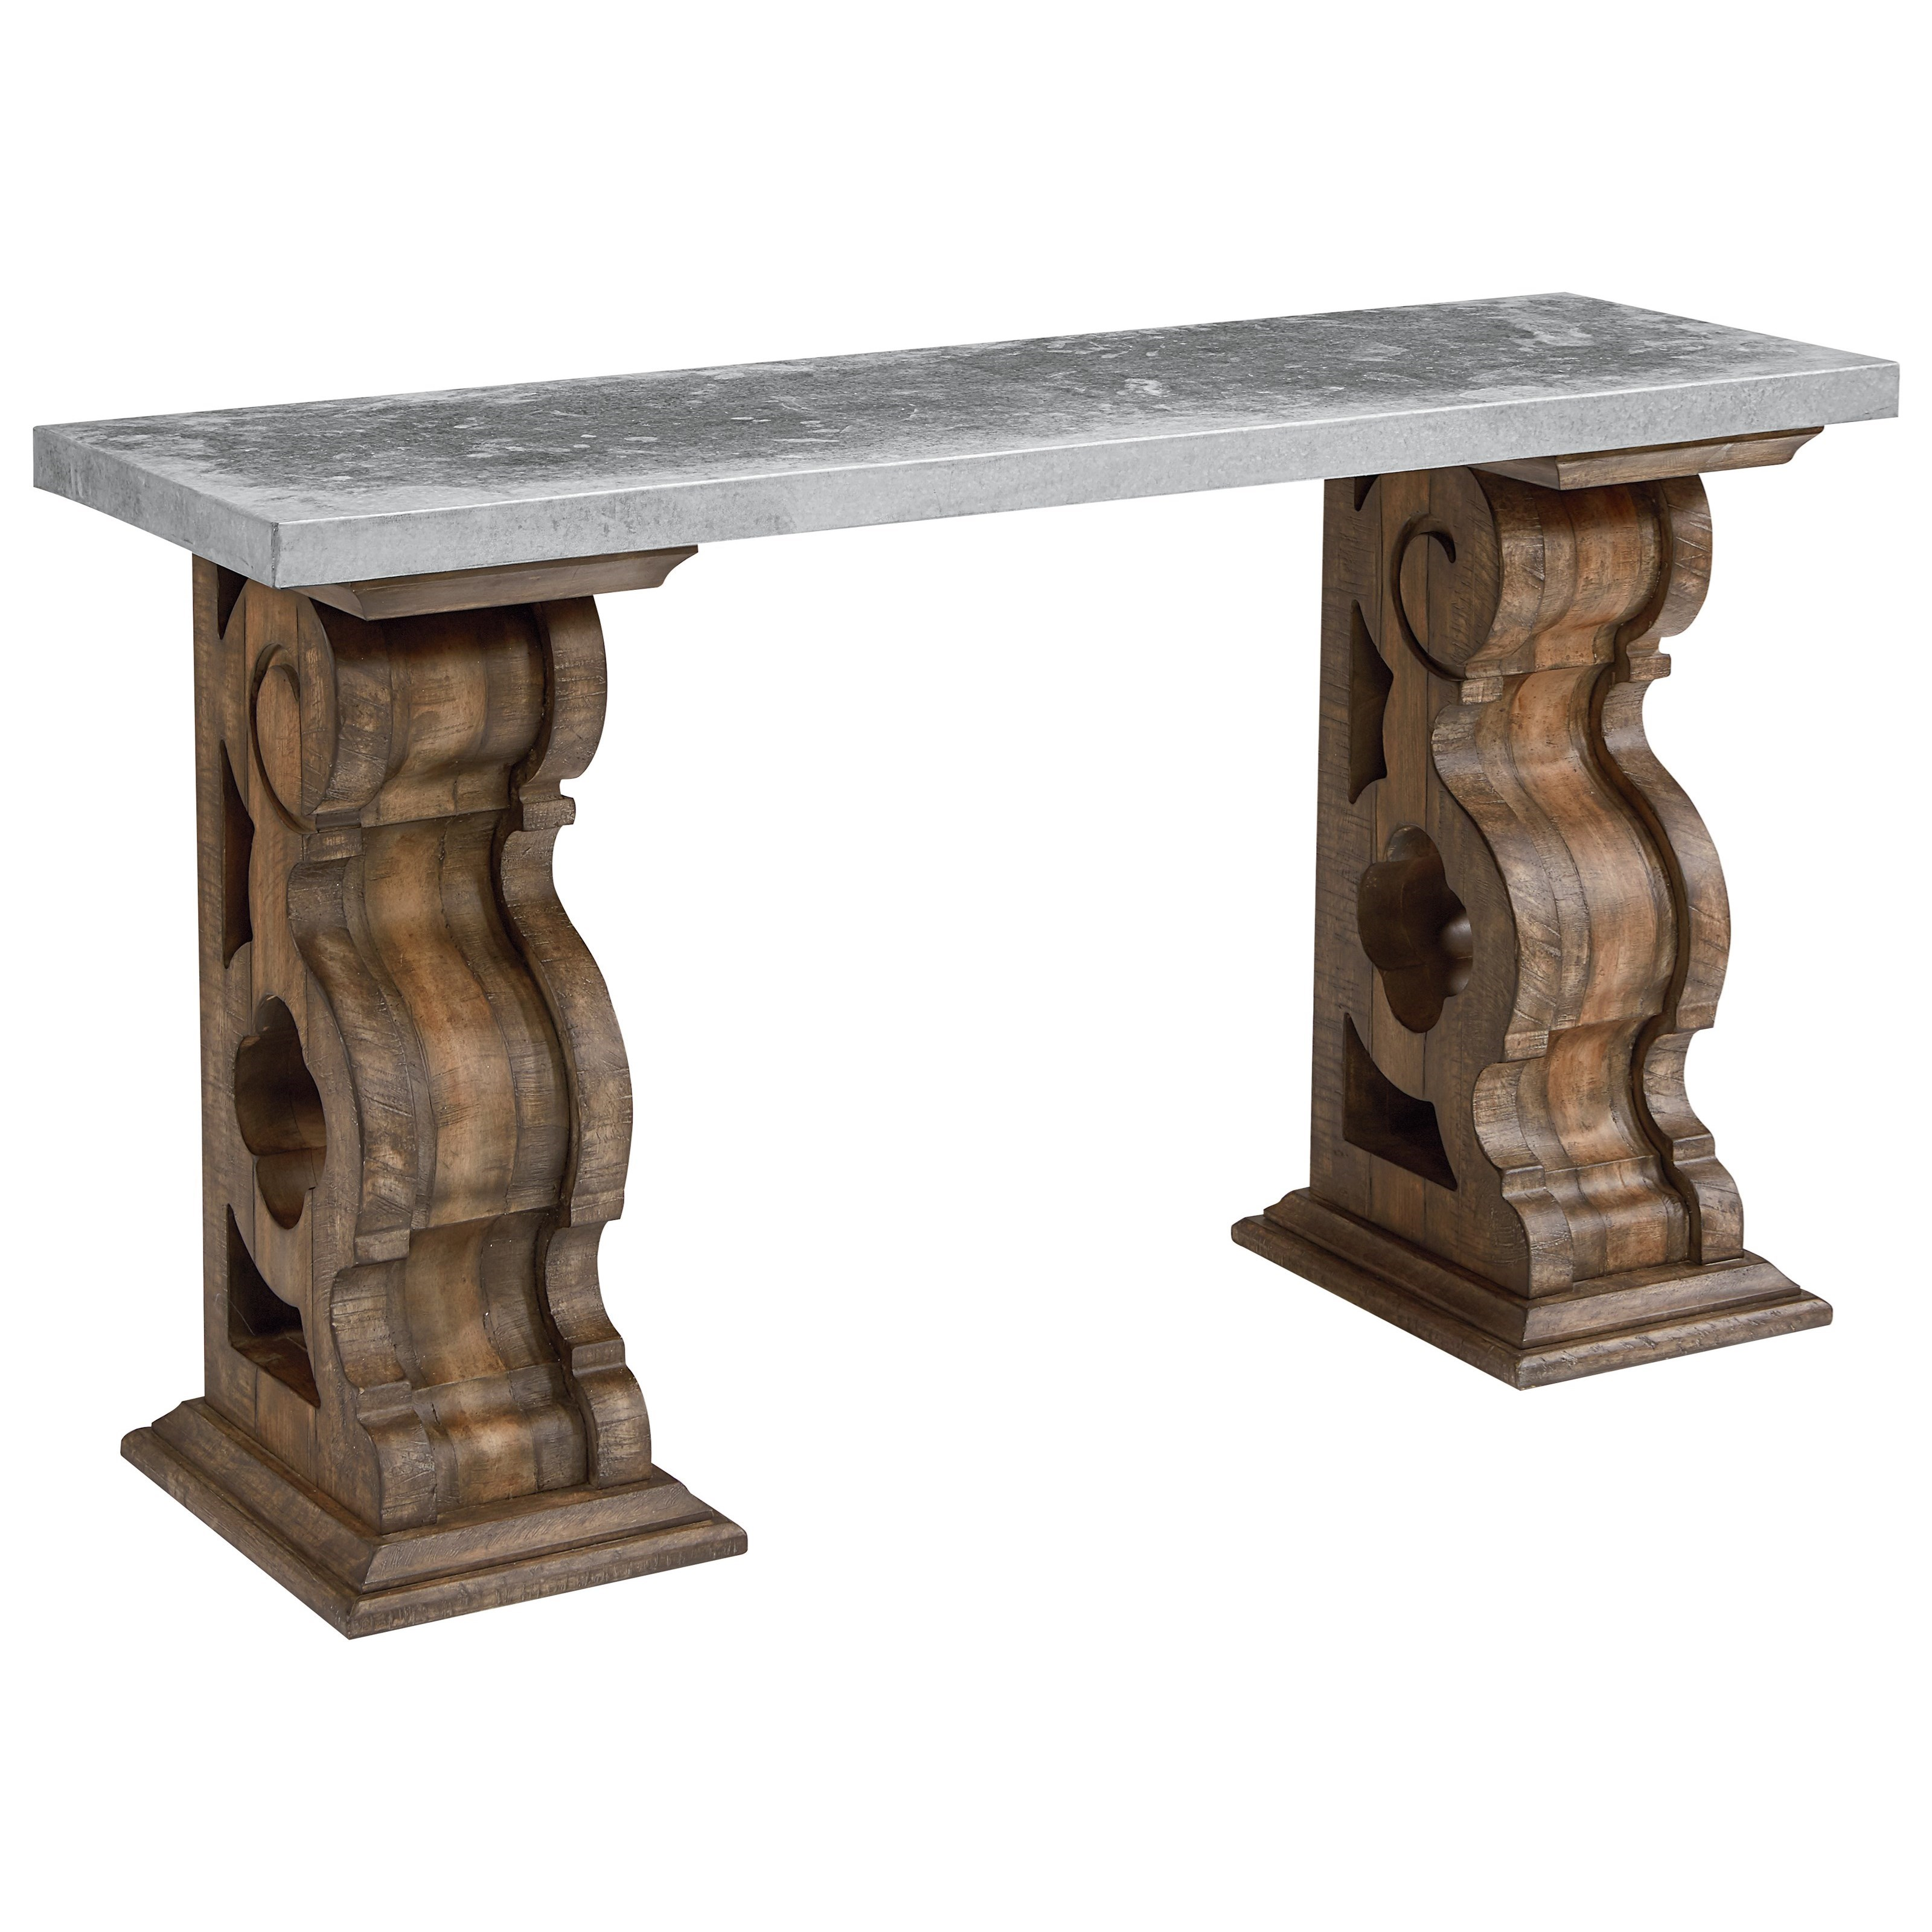 Magnolia Home by Joanna Gaines Traditional Hall Table with Zinc Top - Item Number: 4020122H